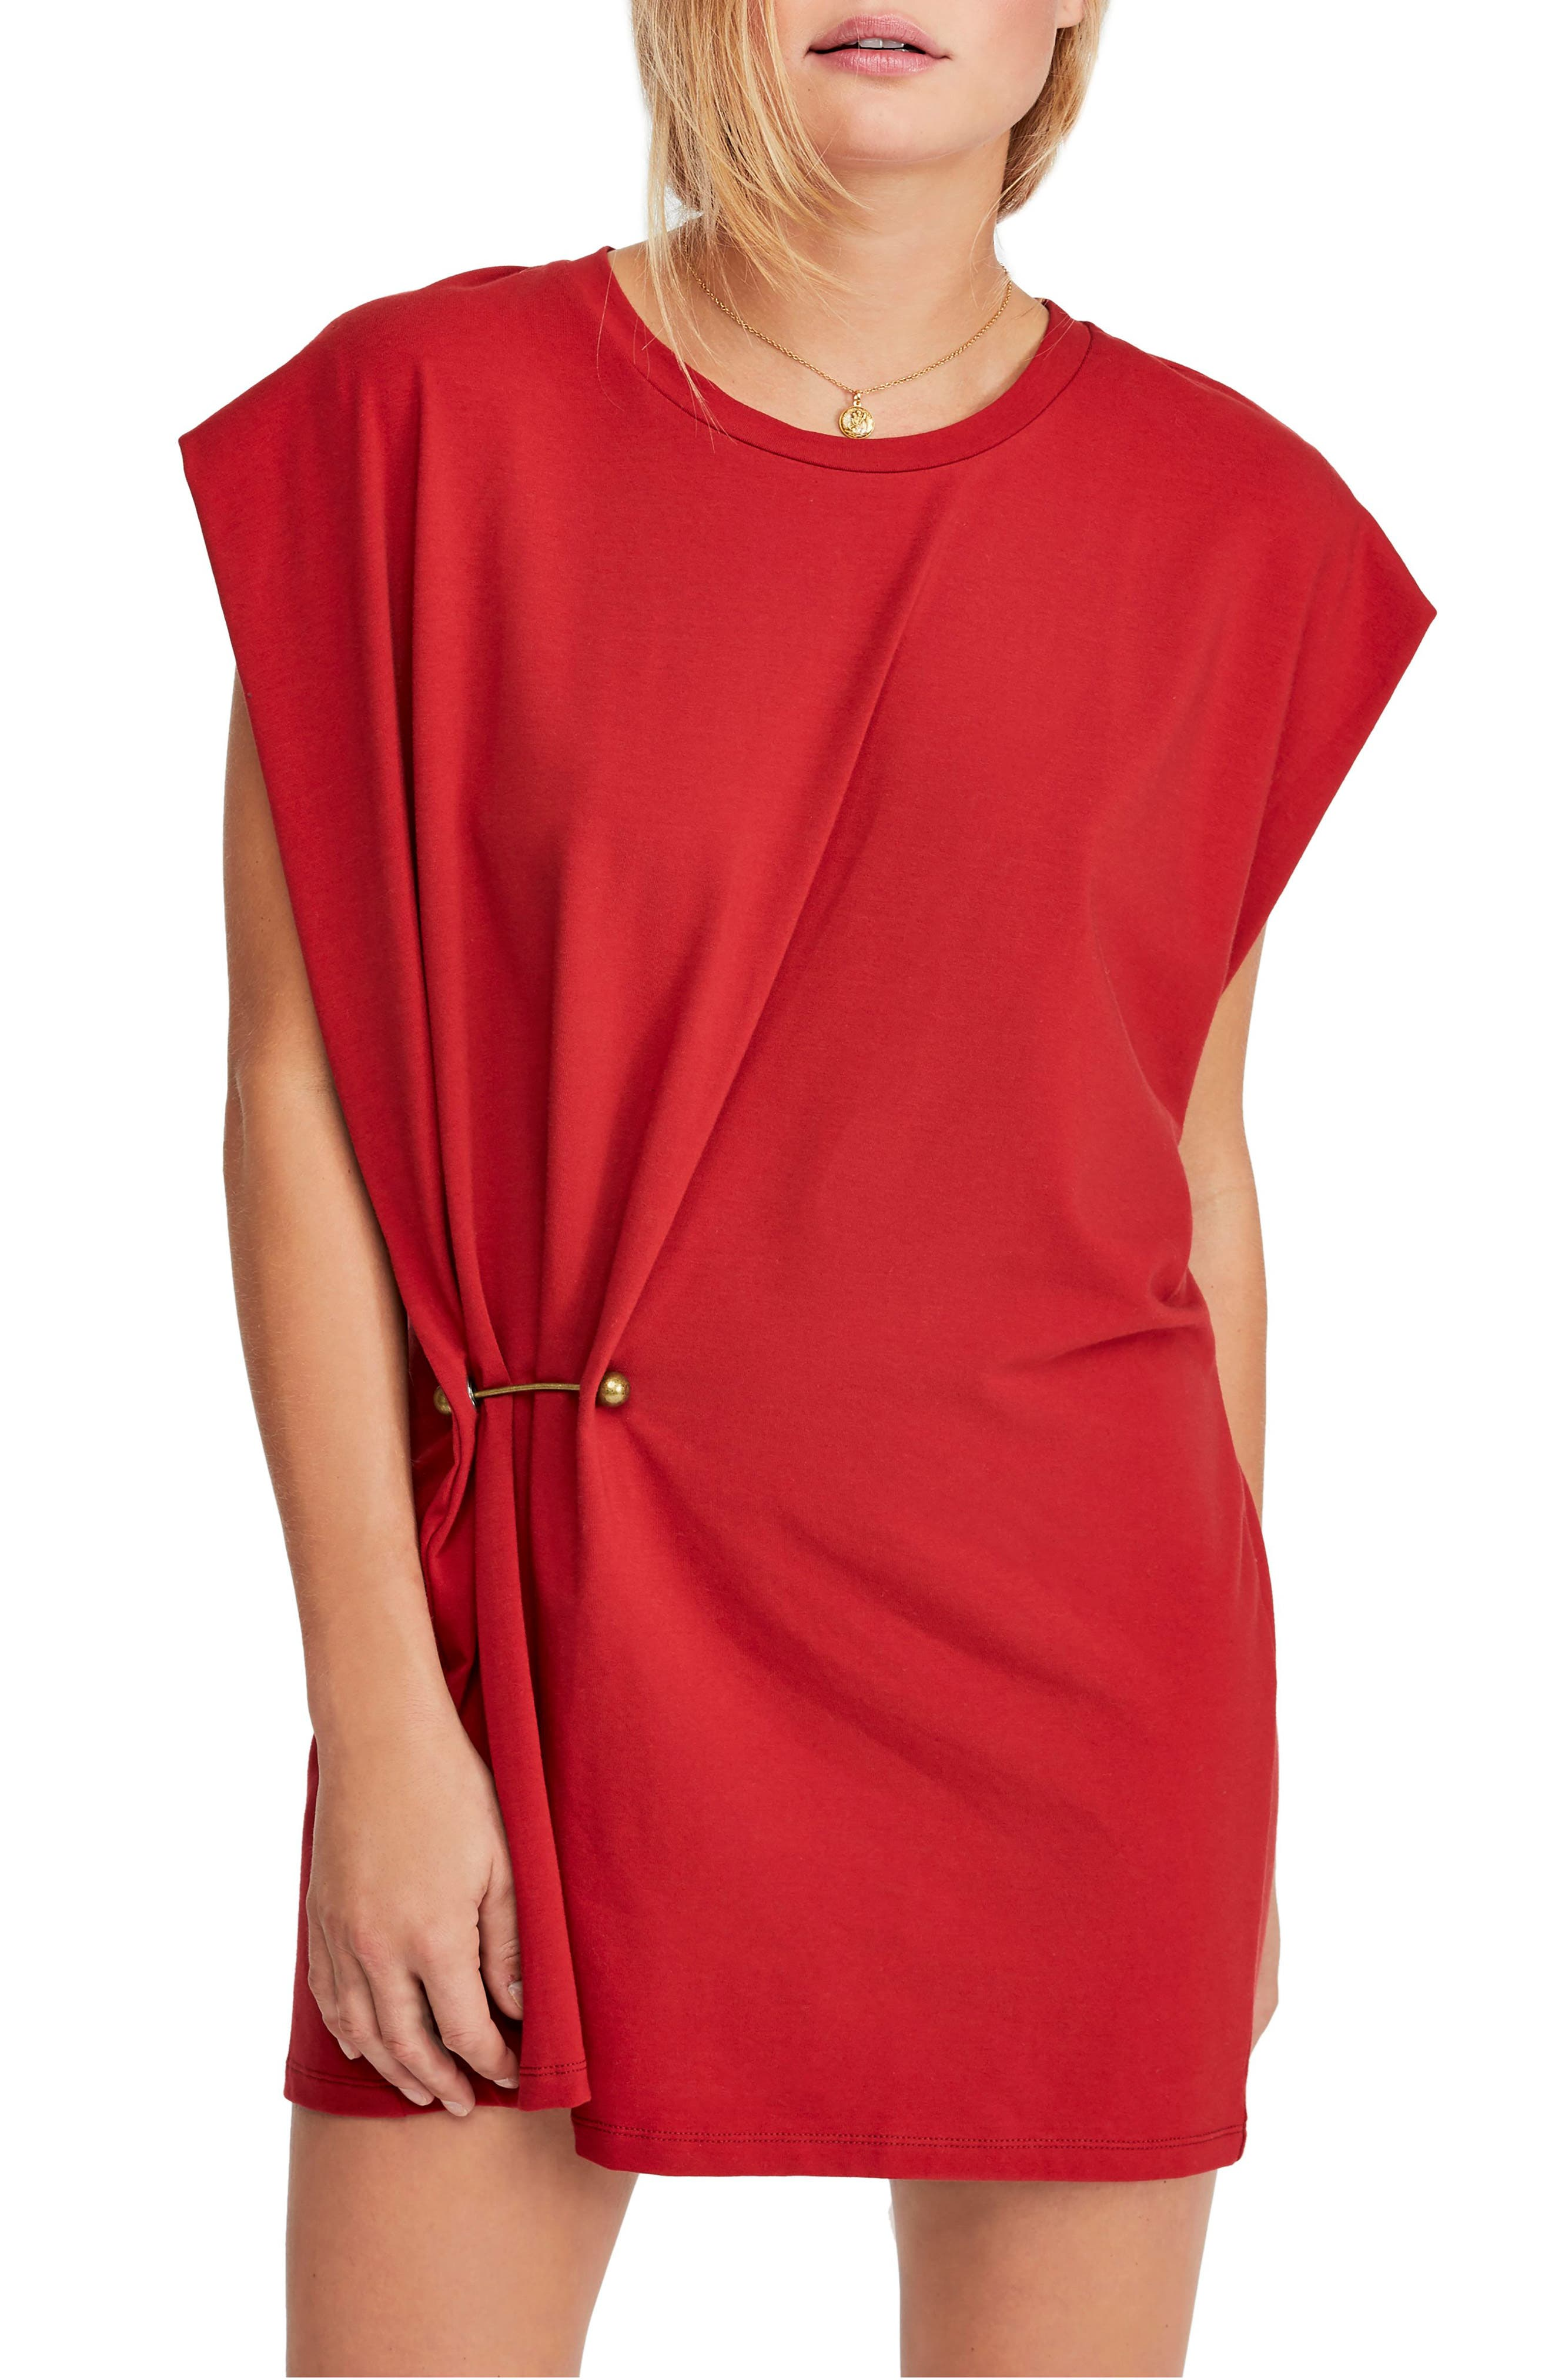 FREE PEOPLE Bianca Shift Dress, Main, color, RED